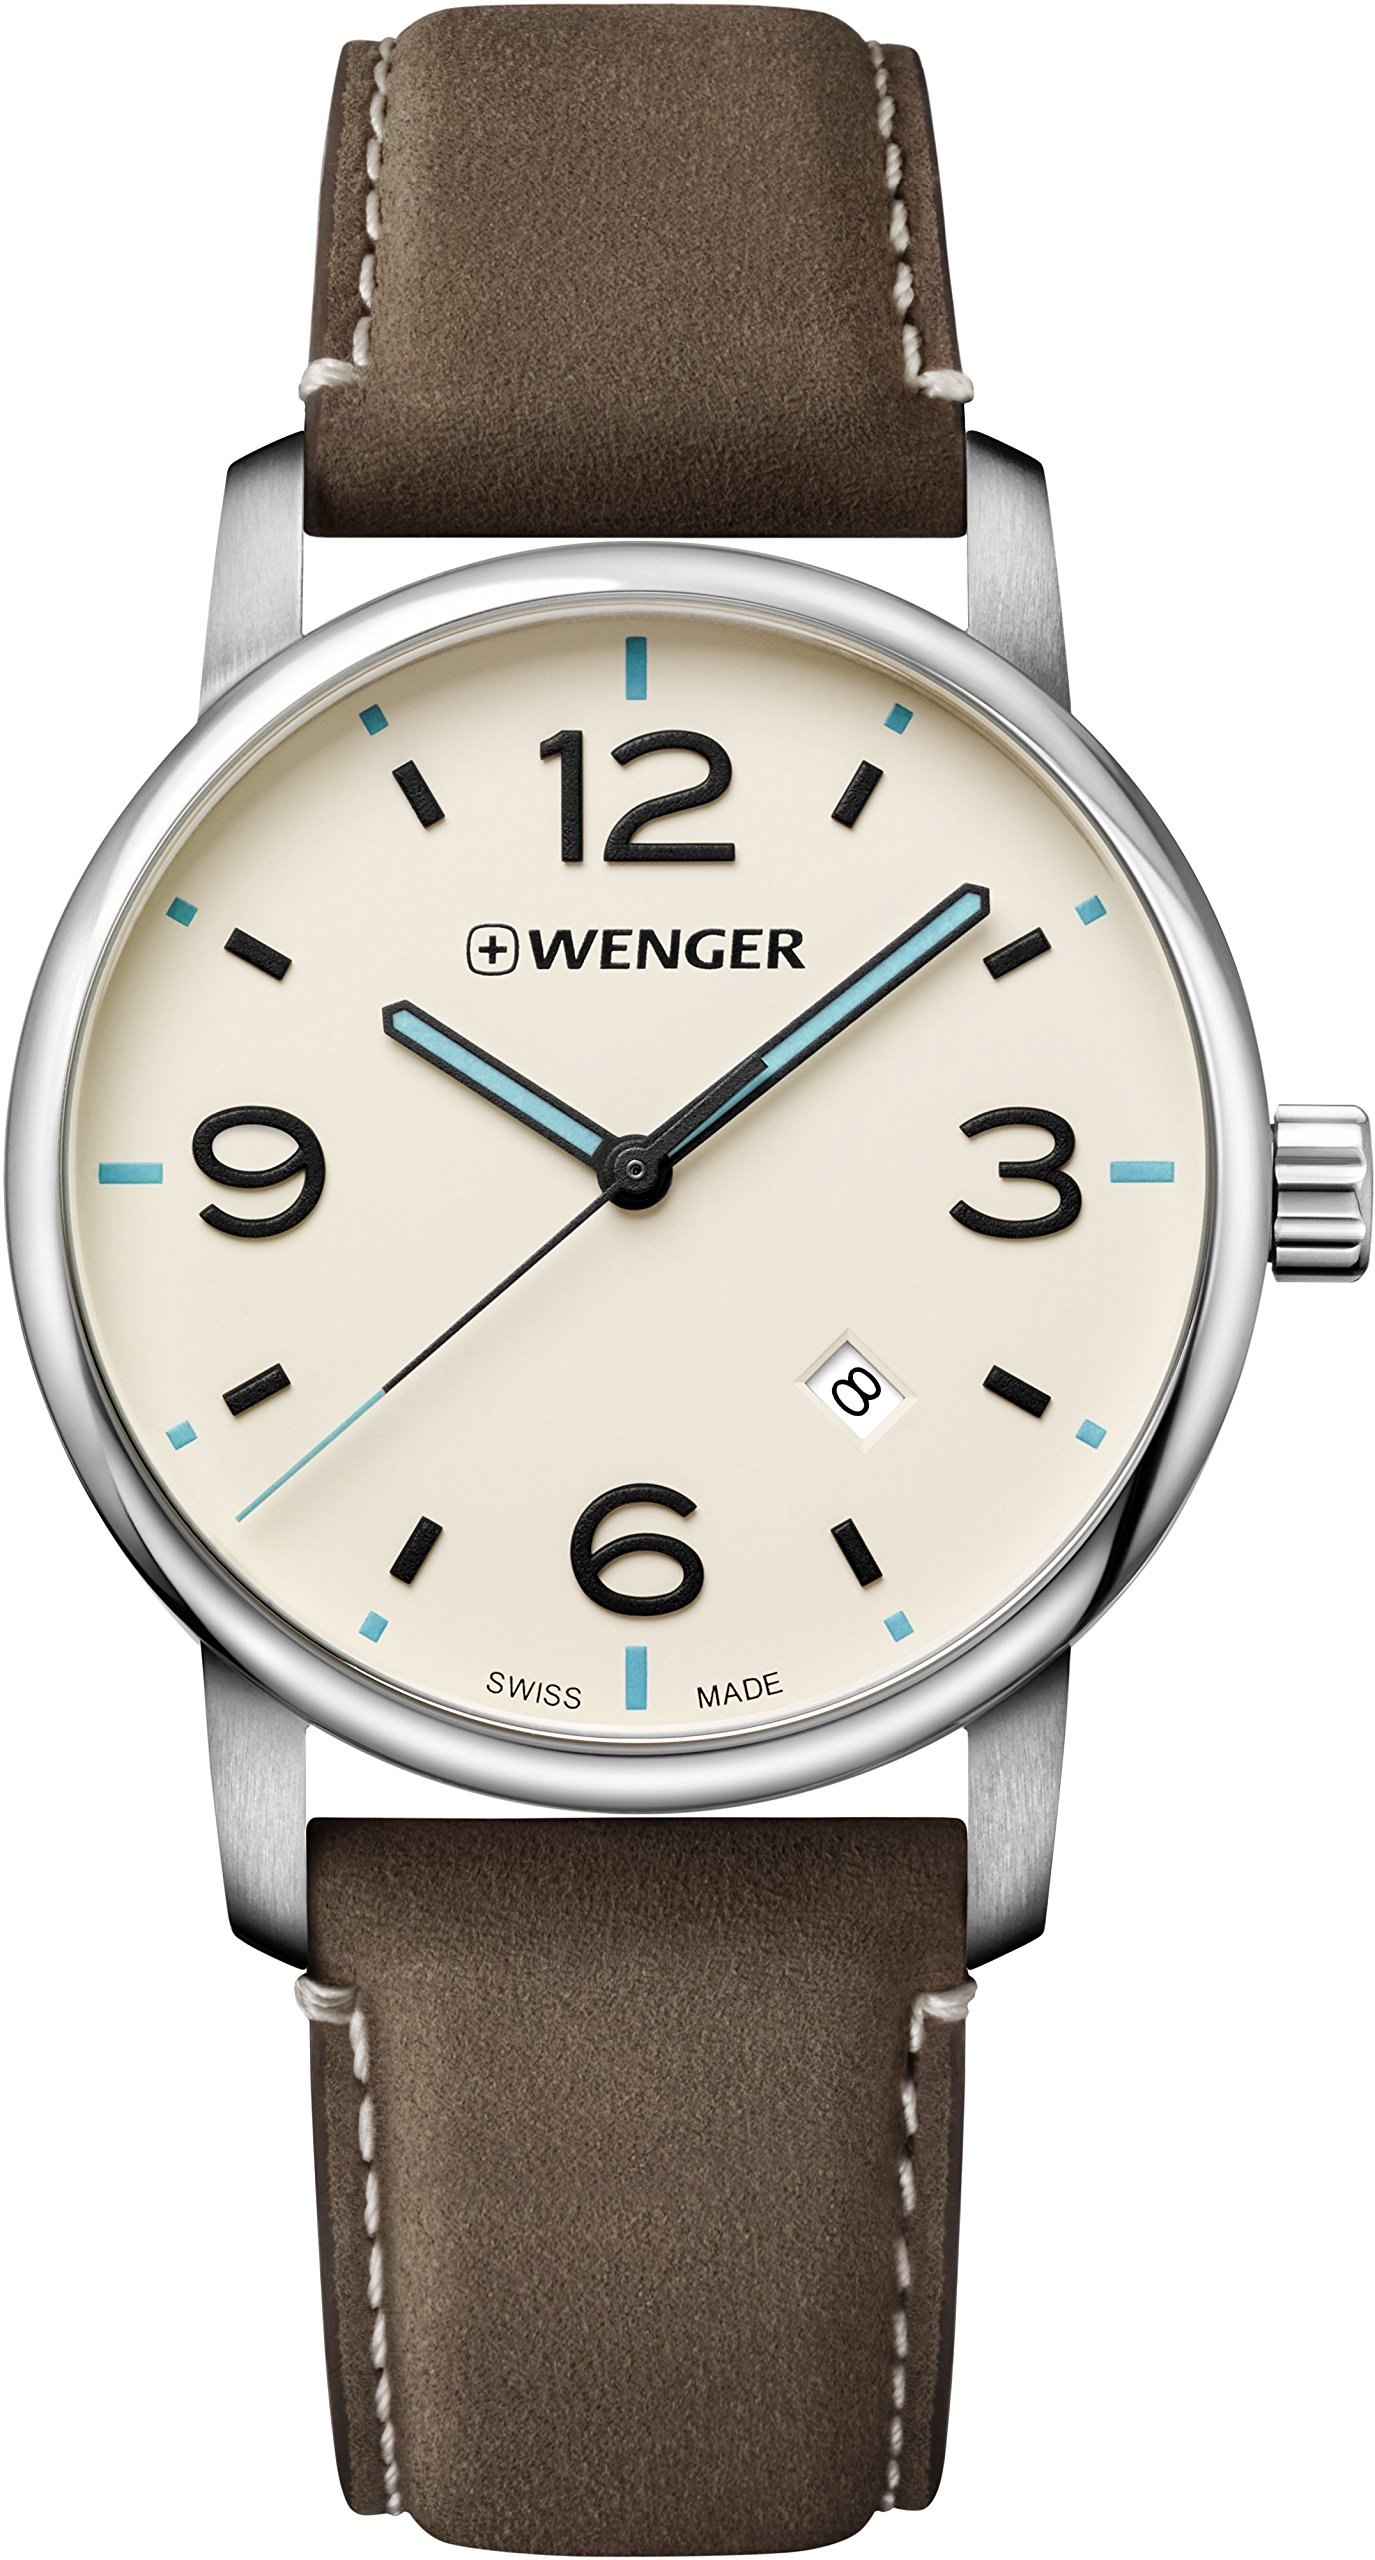 Wenger Unisex Analogue Quartz Watch with Leather Strap 01.1741.118